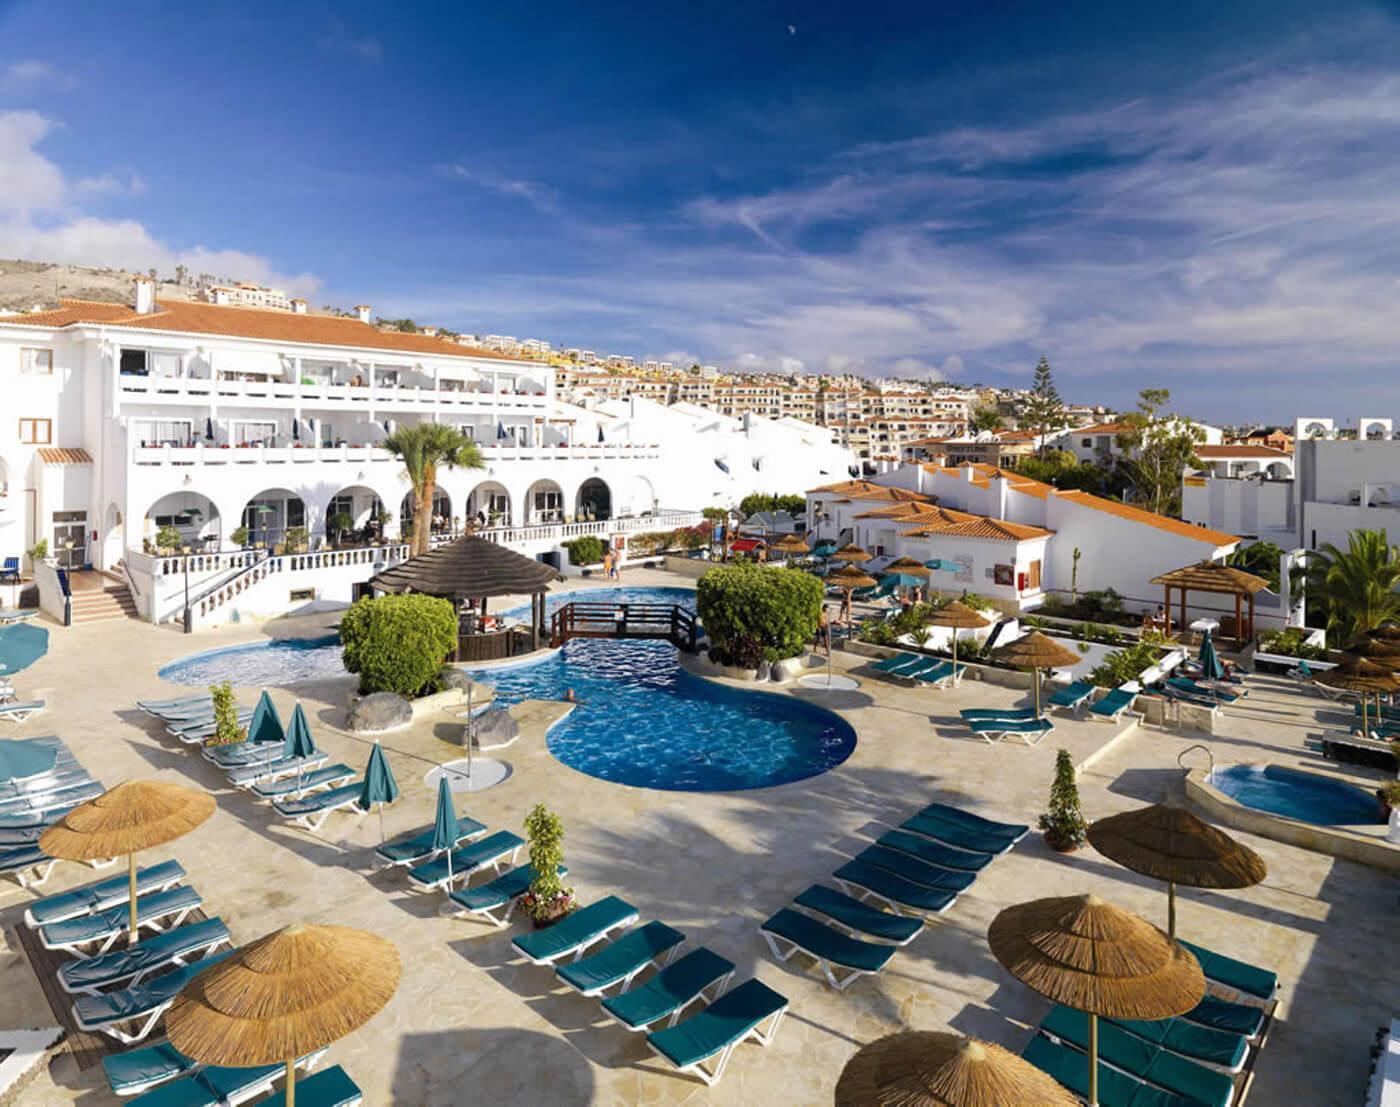 Regency Torviscas Apartments Suites in Costa Adeje, Tenerife, Canary Islands